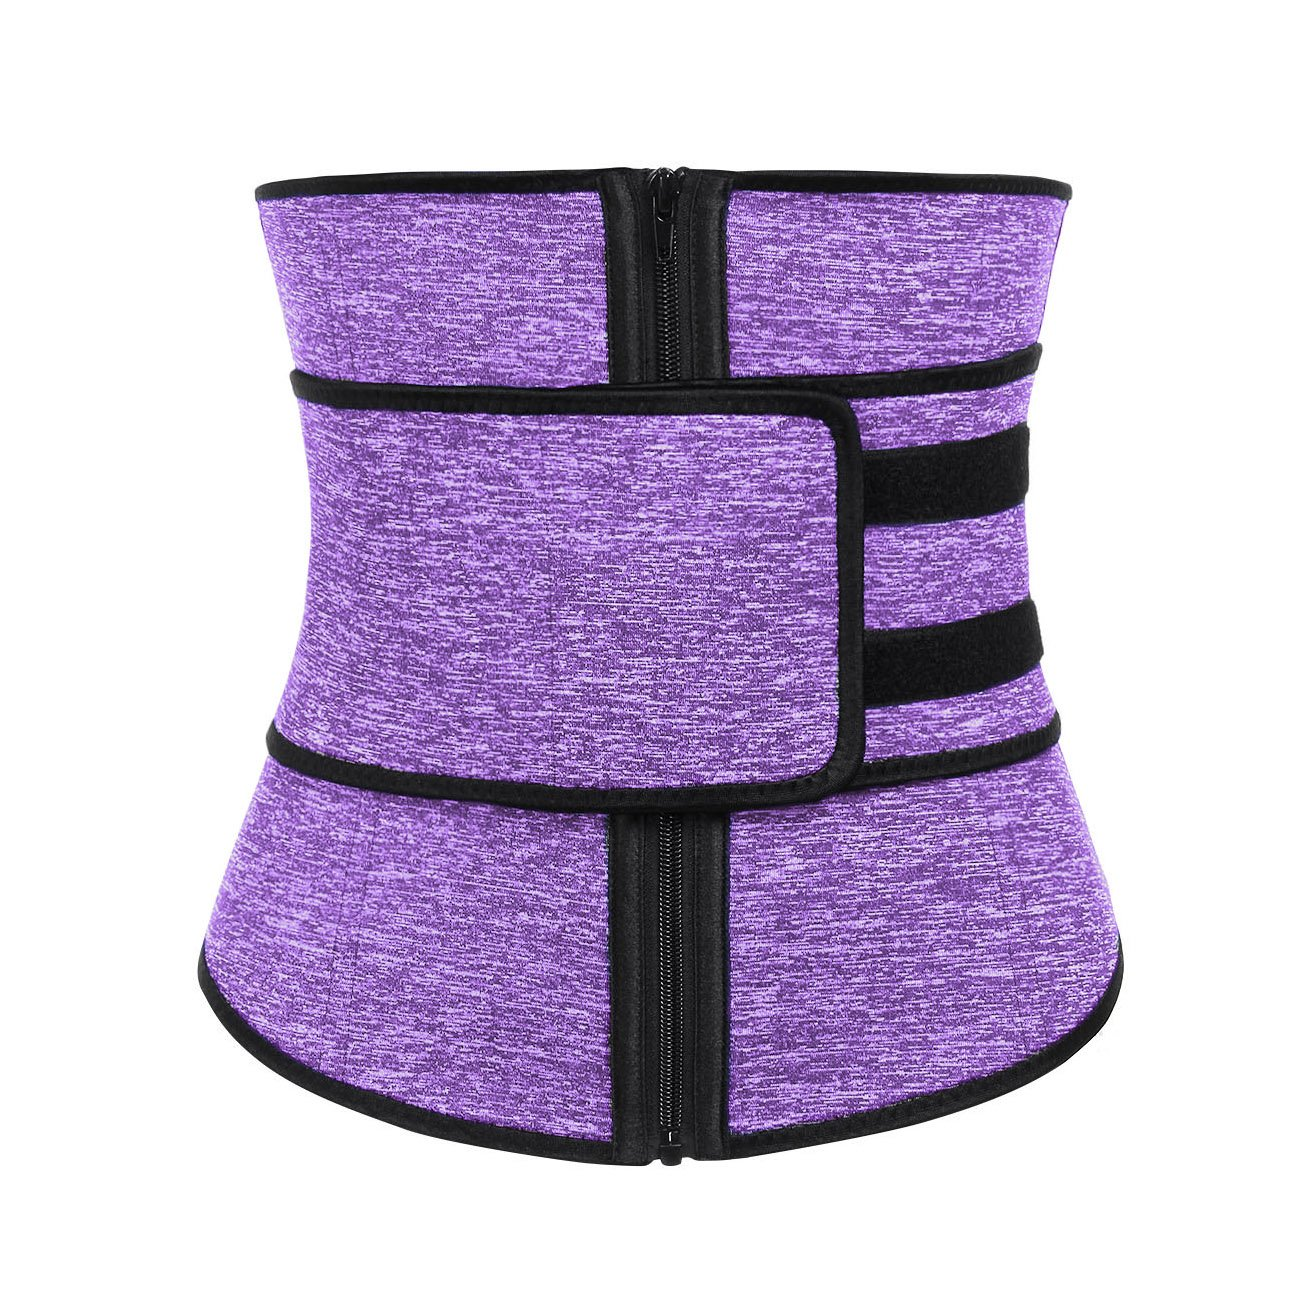 Sweetlover Waist Trainer Women Neoprene Corset Workout Trimmer Belt Hot Sweat Body Shaper Cincher with Zipper Waistband